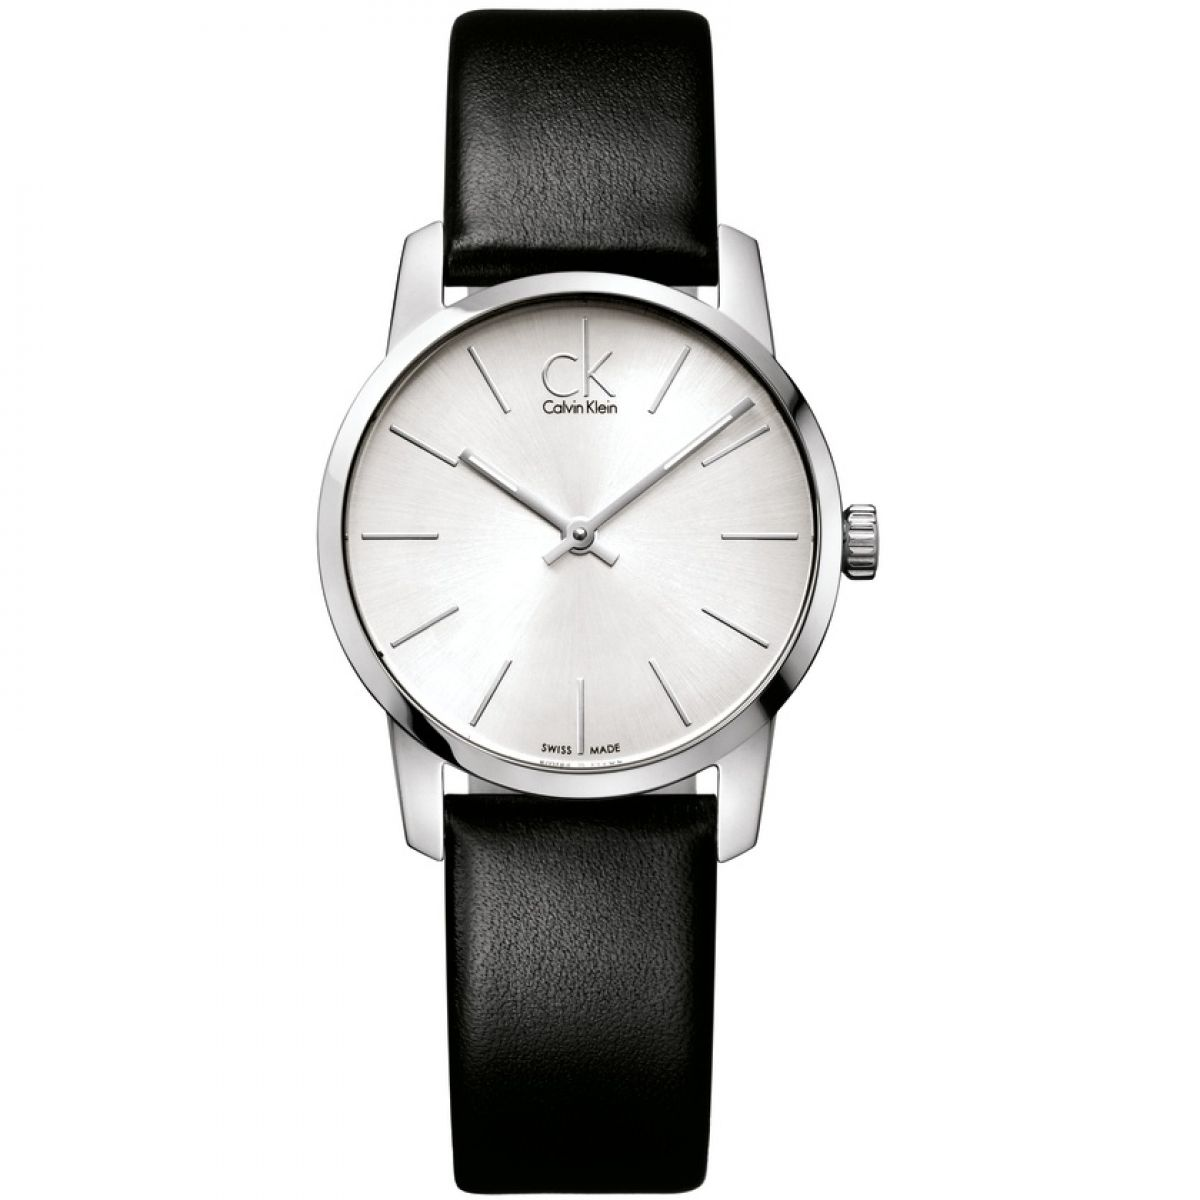 Calvin Klein Watches (382 products) - Ethos Watch Boutiques